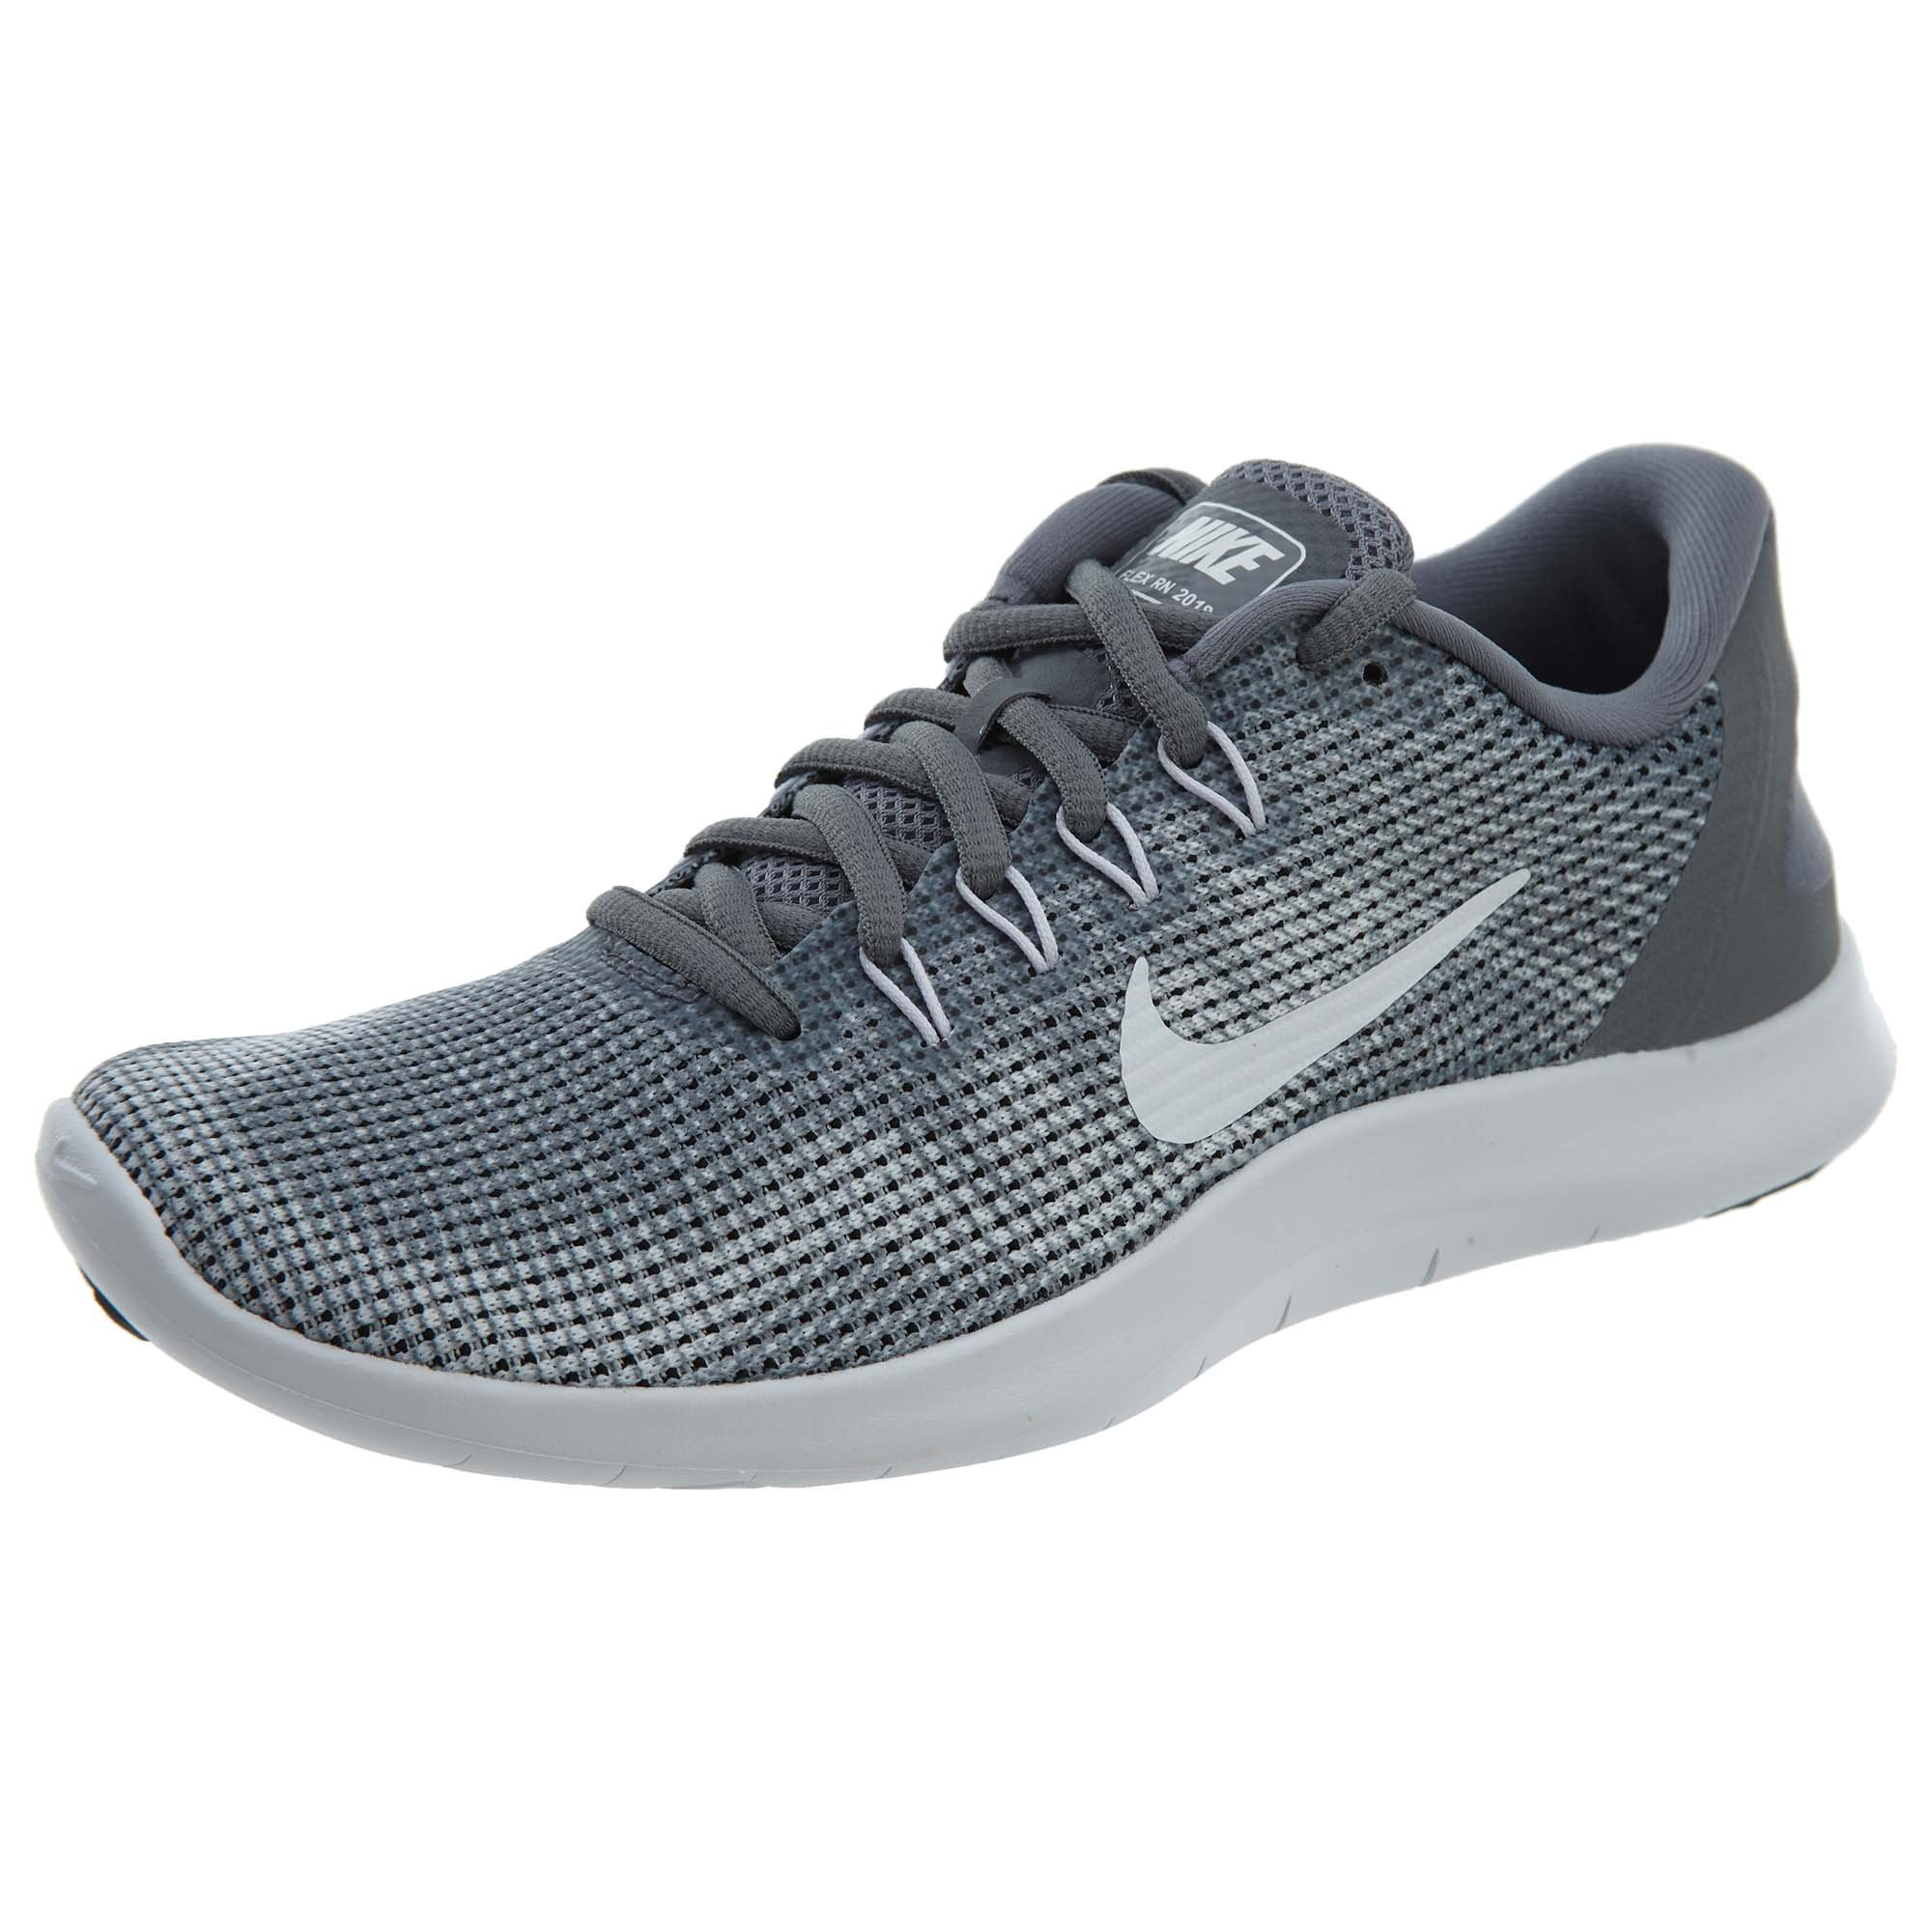 competitive price d762c fbdef Galleon - NIKE Women s Flex Run 2018 Running Shoes (6.5 B(M) US, Cool Grey  White)